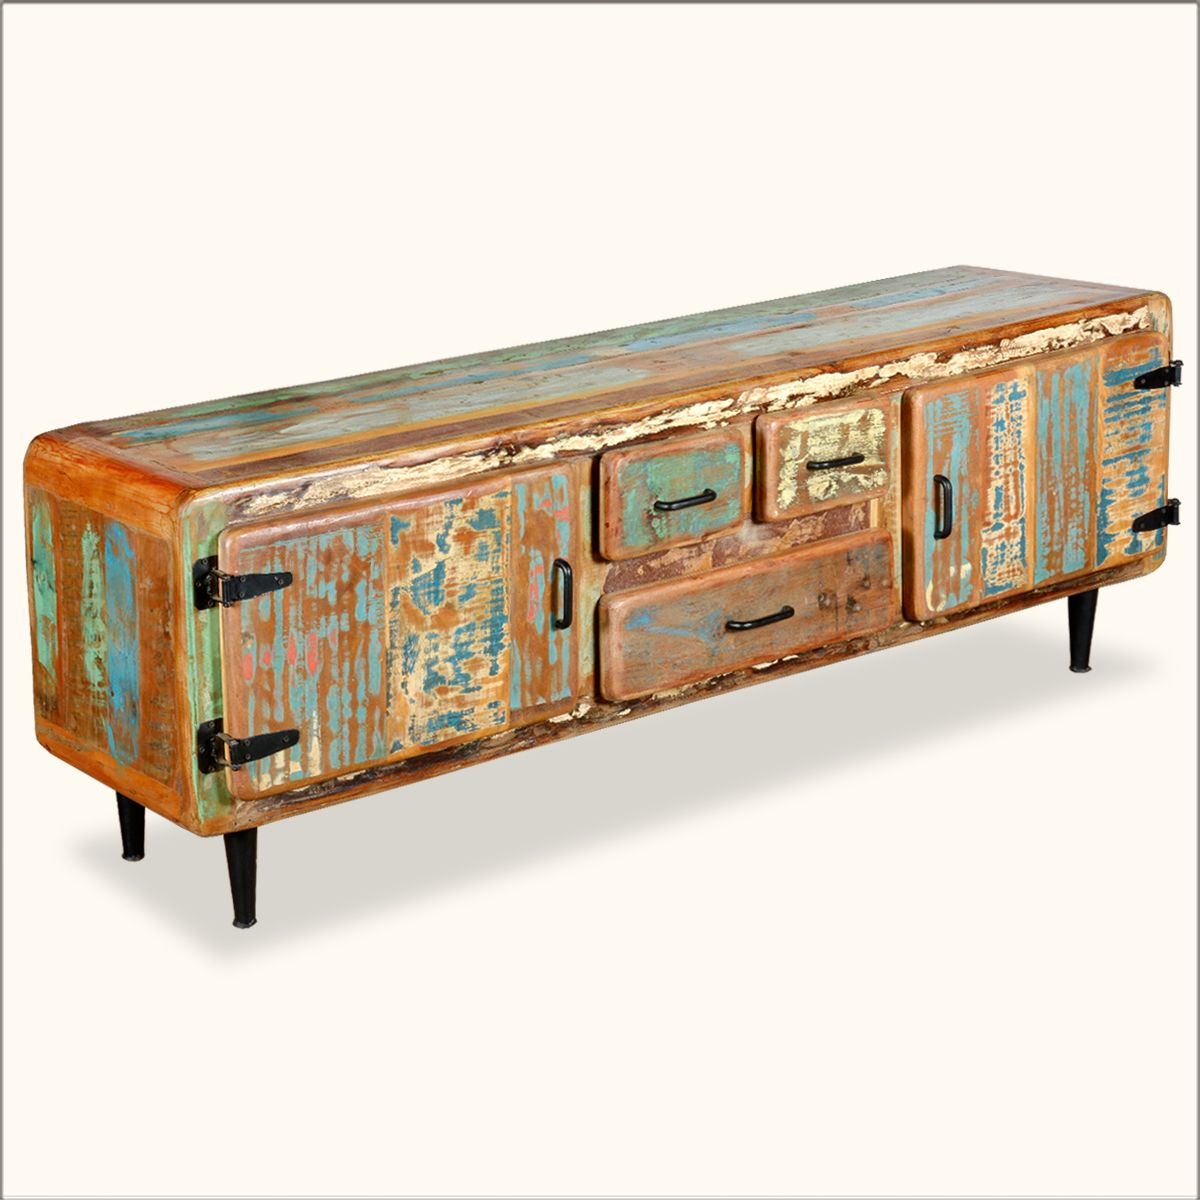 Tv television stands austin s furniture - Retro Reclaimed Painted Wood Media Center Cabinet